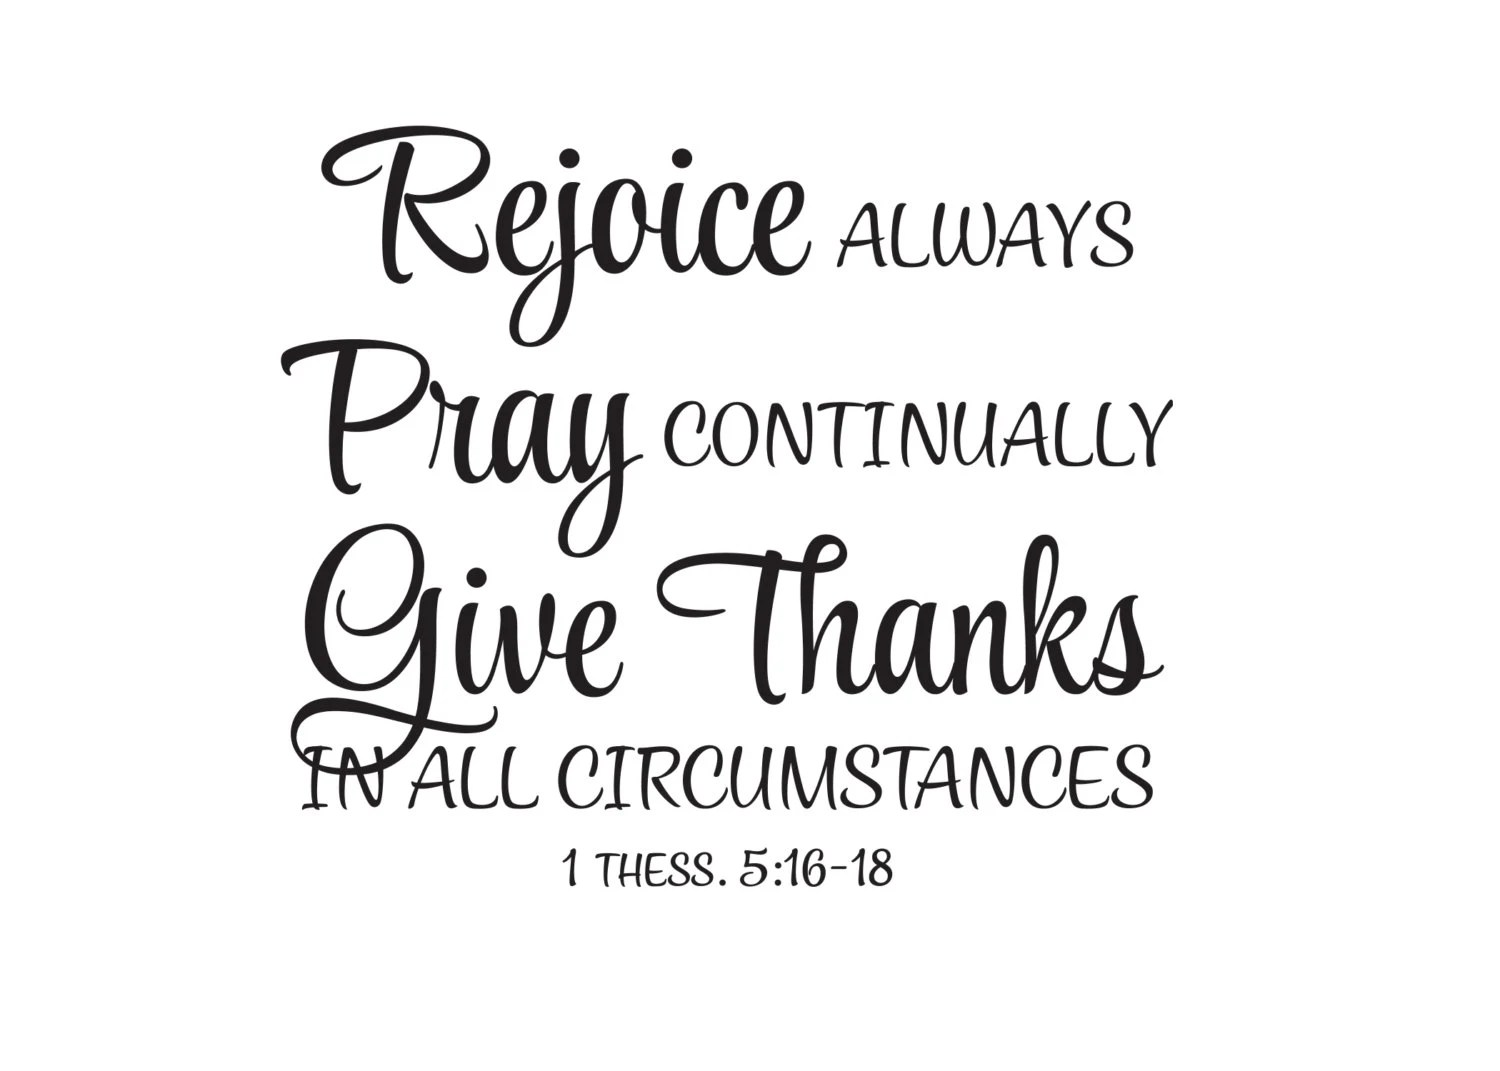 1 Thessalonians 5:16-18 Give thanks in all Circumstances